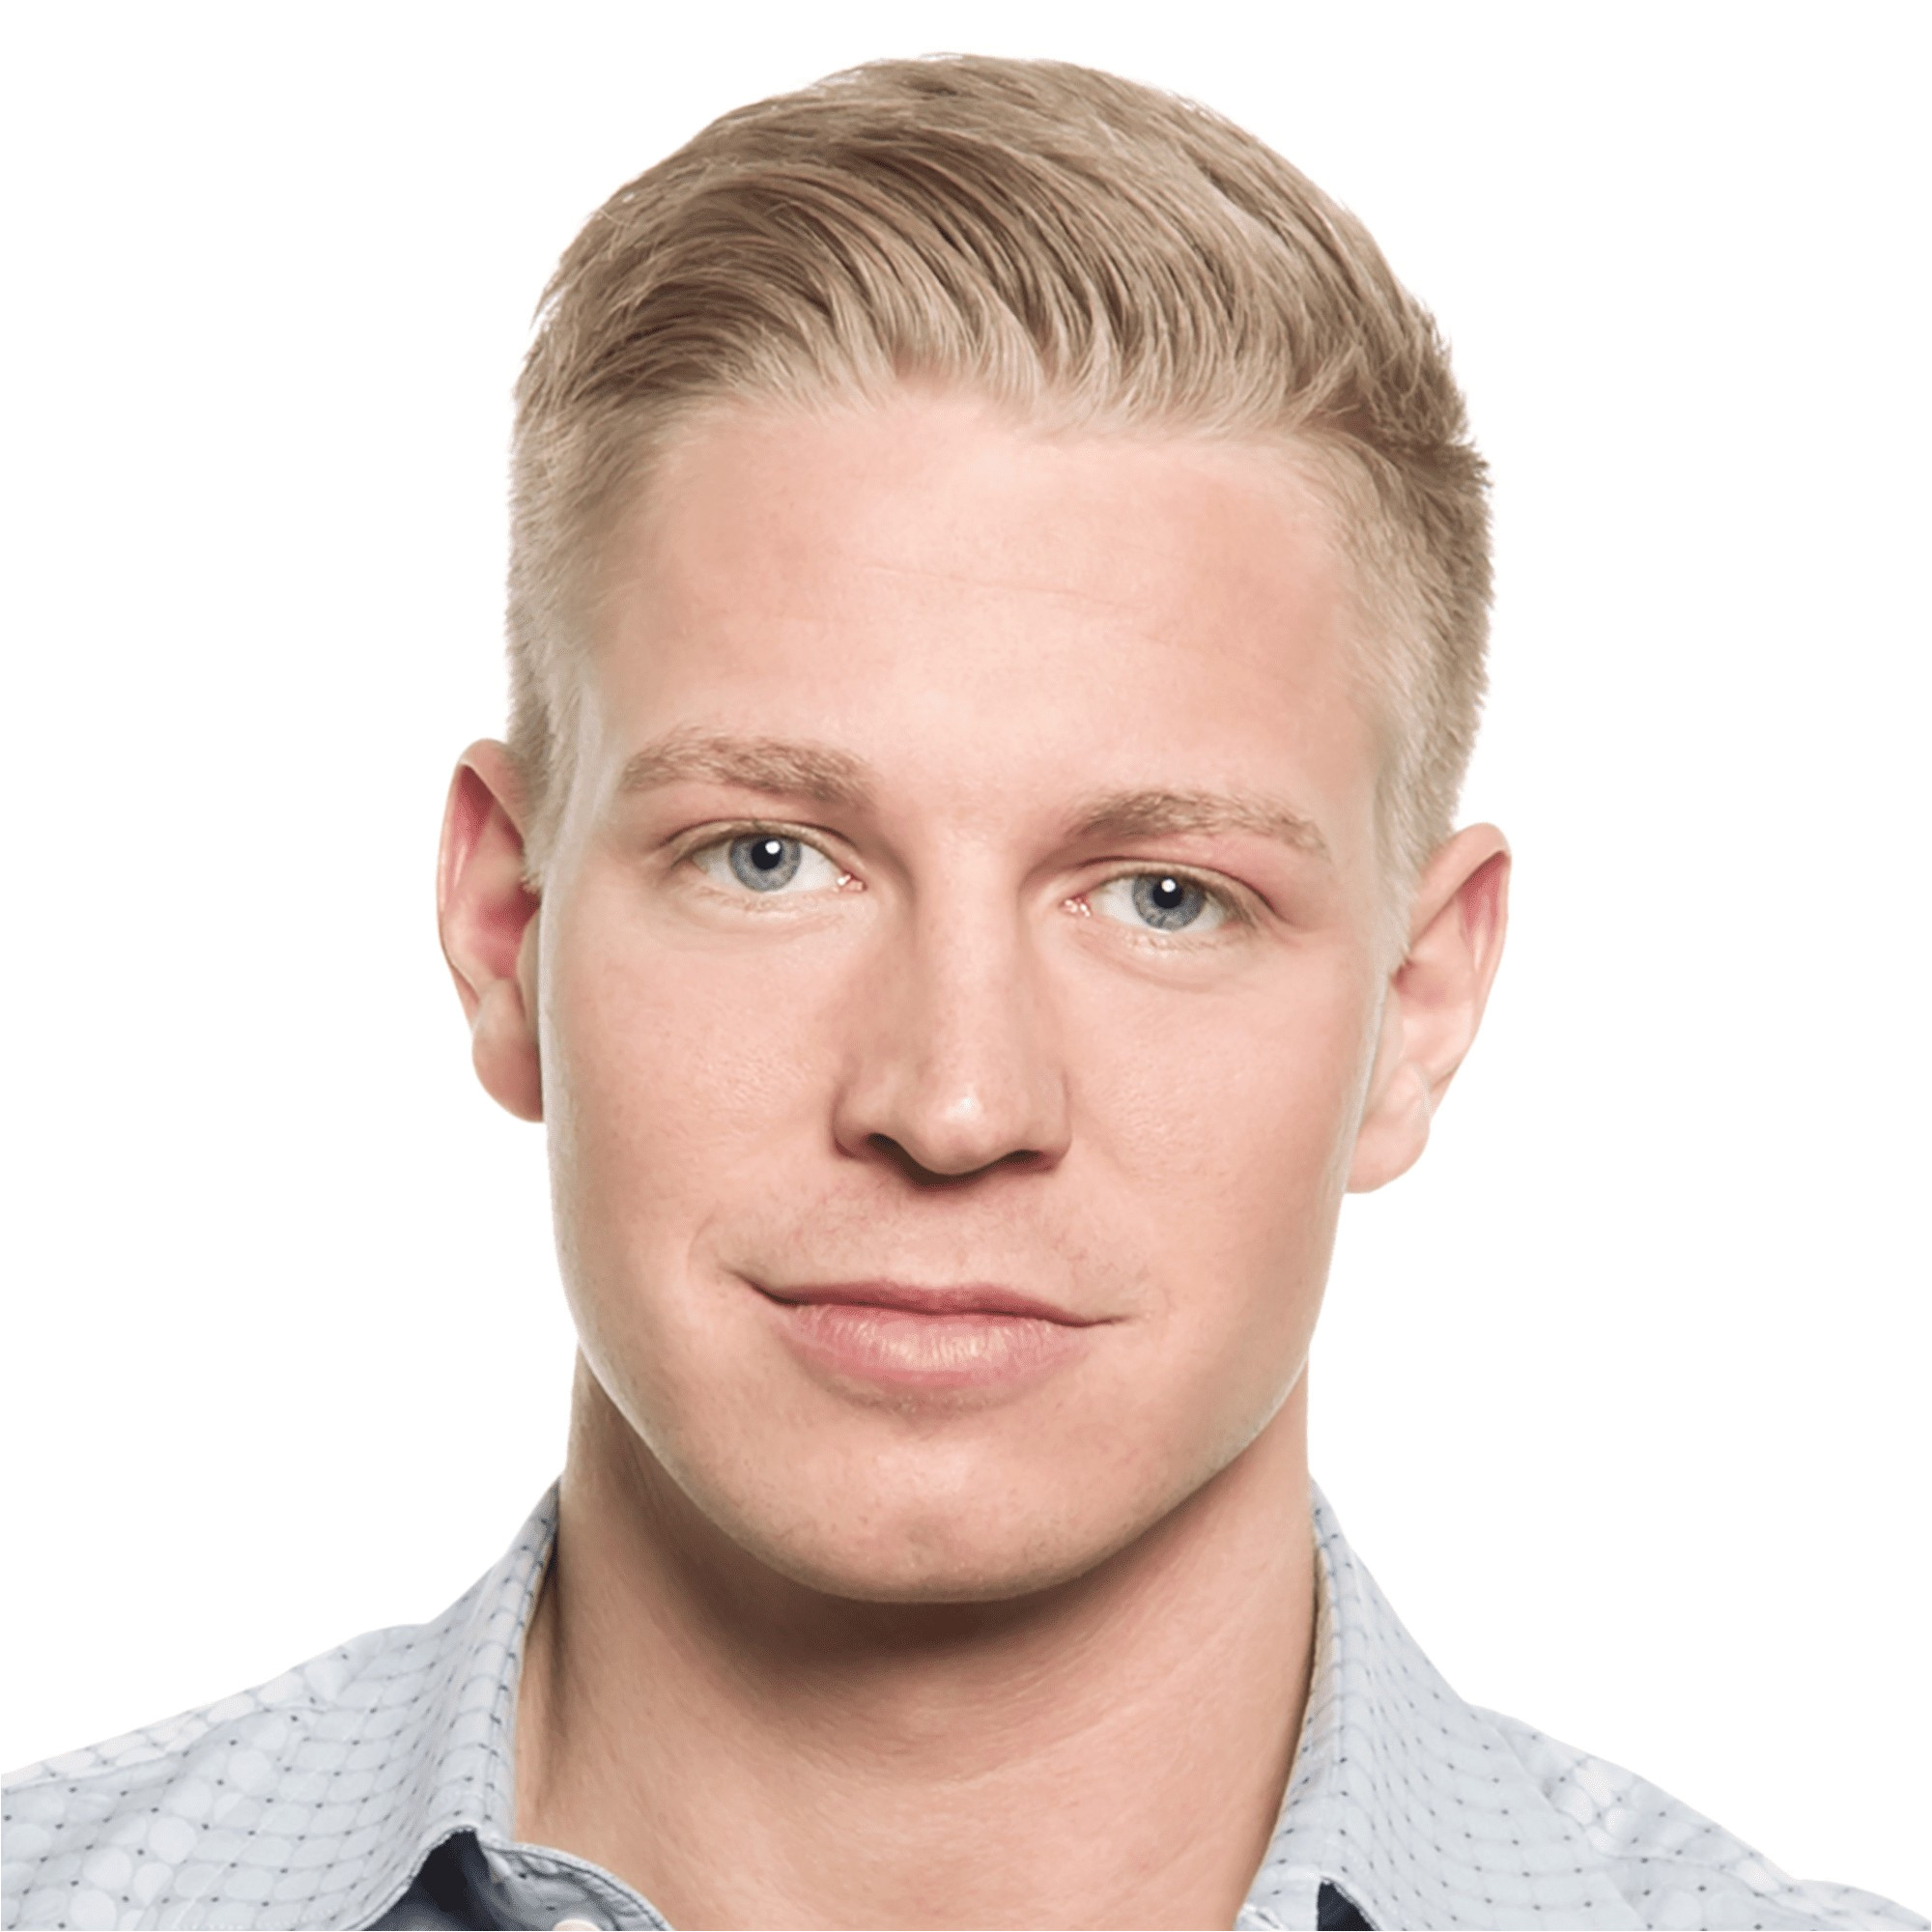 Asian Hair Styles for Men Inspirational Chinese Hairstyle Male Beautiful Guy Hairstyle